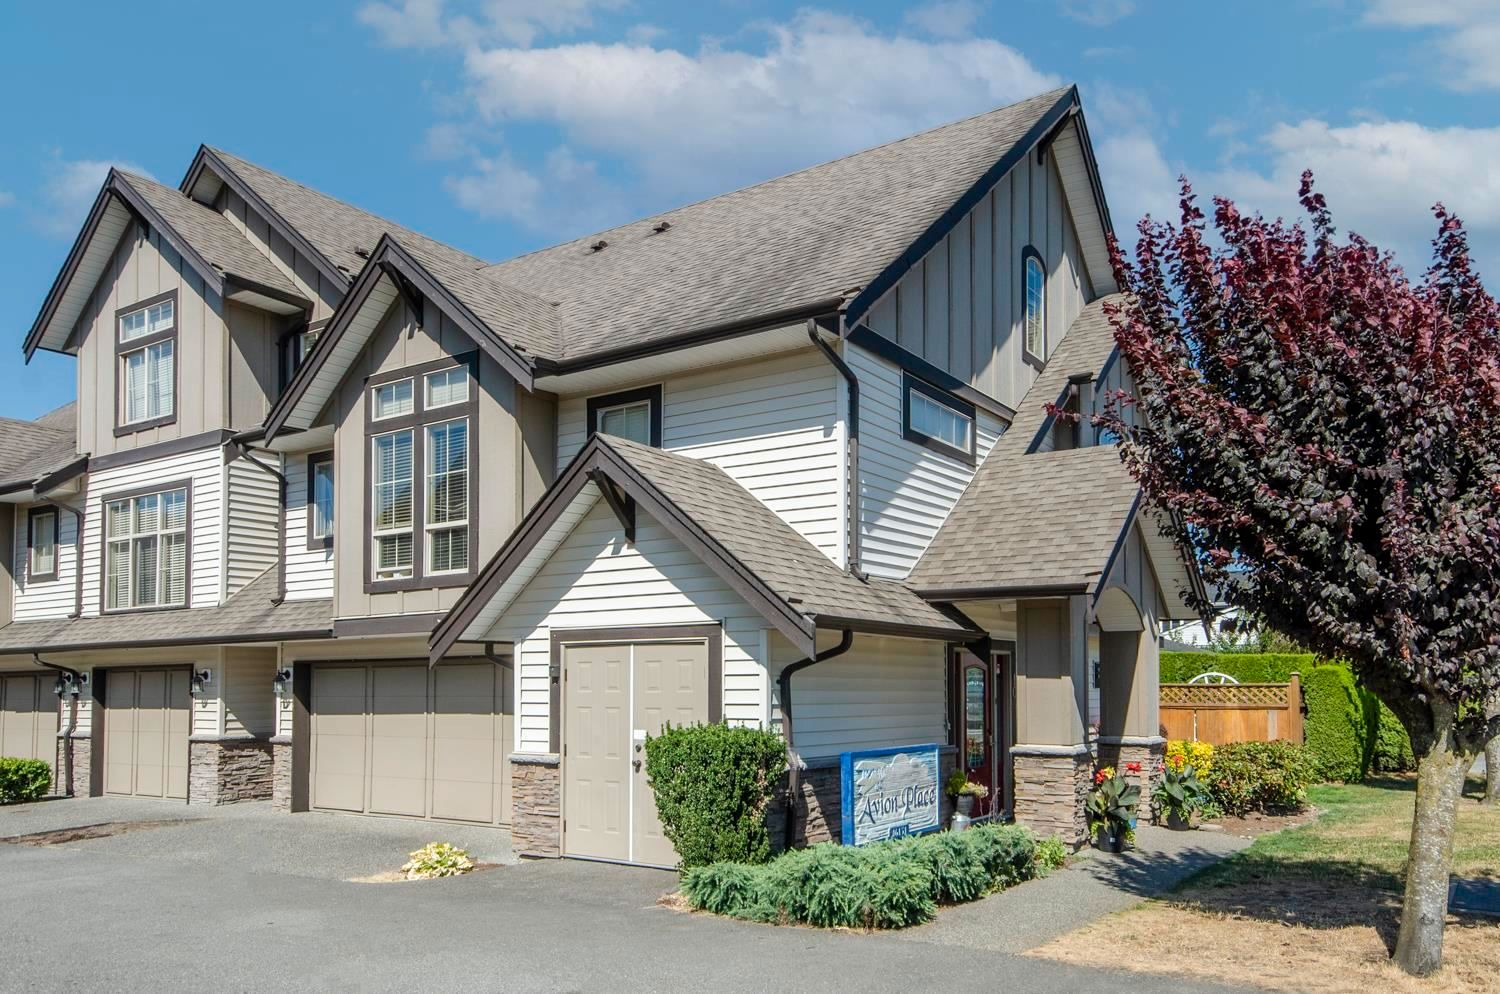 """Main Photo: 10 46151 AIRPORT Road in Chilliwack: Chilliwack E Young-Yale Townhouse for sale in """"AVION PLACE"""" : MLS®# R2603703"""